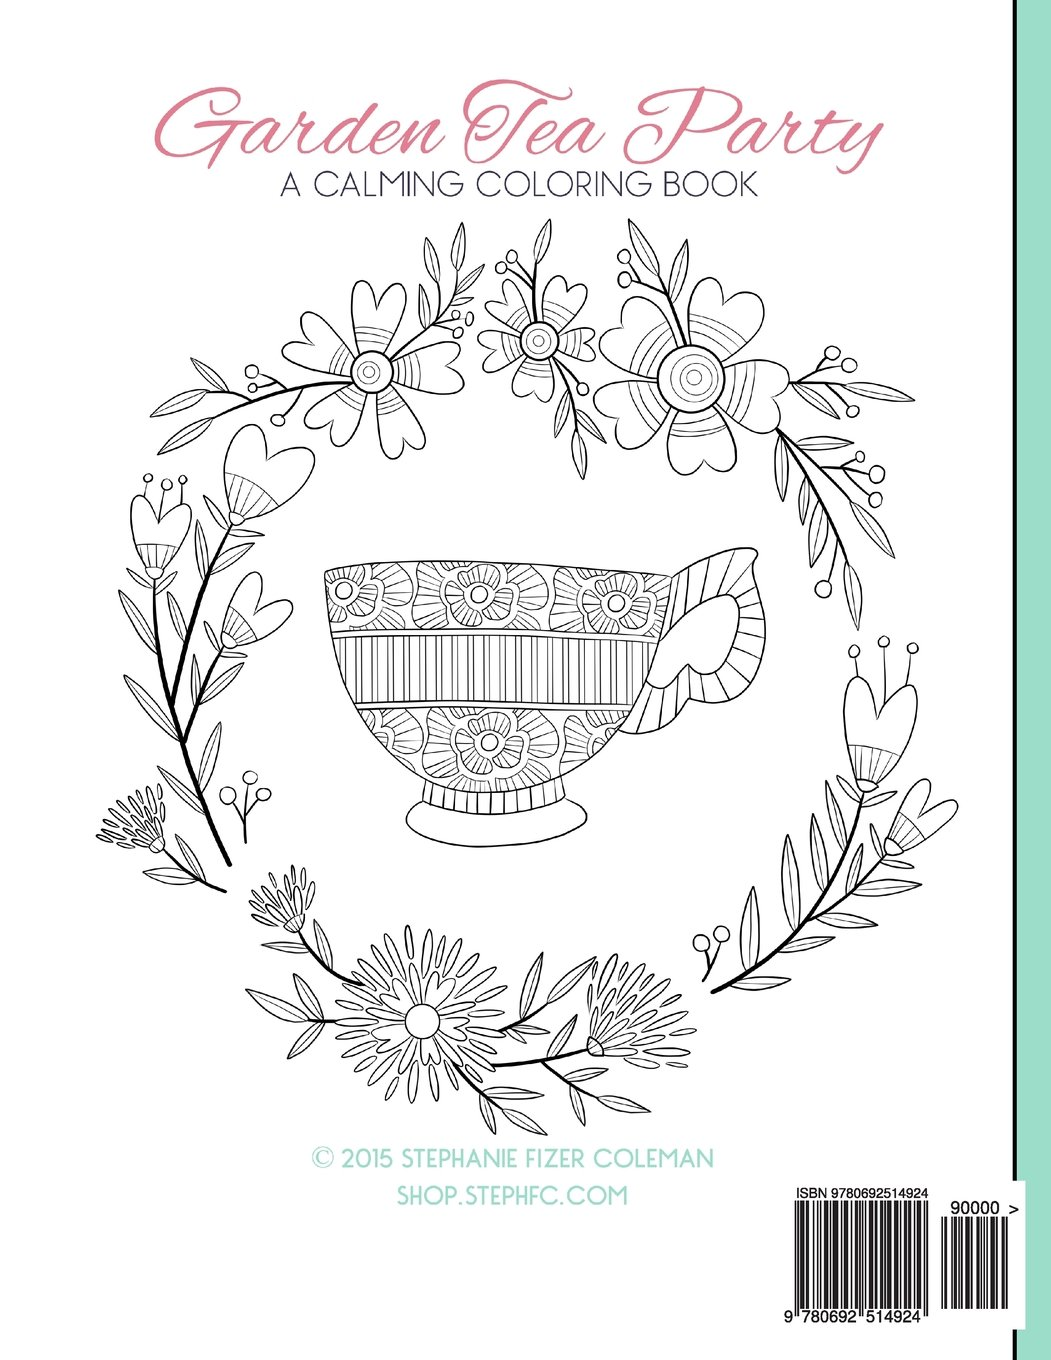 Amazon.com: Garden Tea Party: A Calming Coloring Book (9780692514924 ...